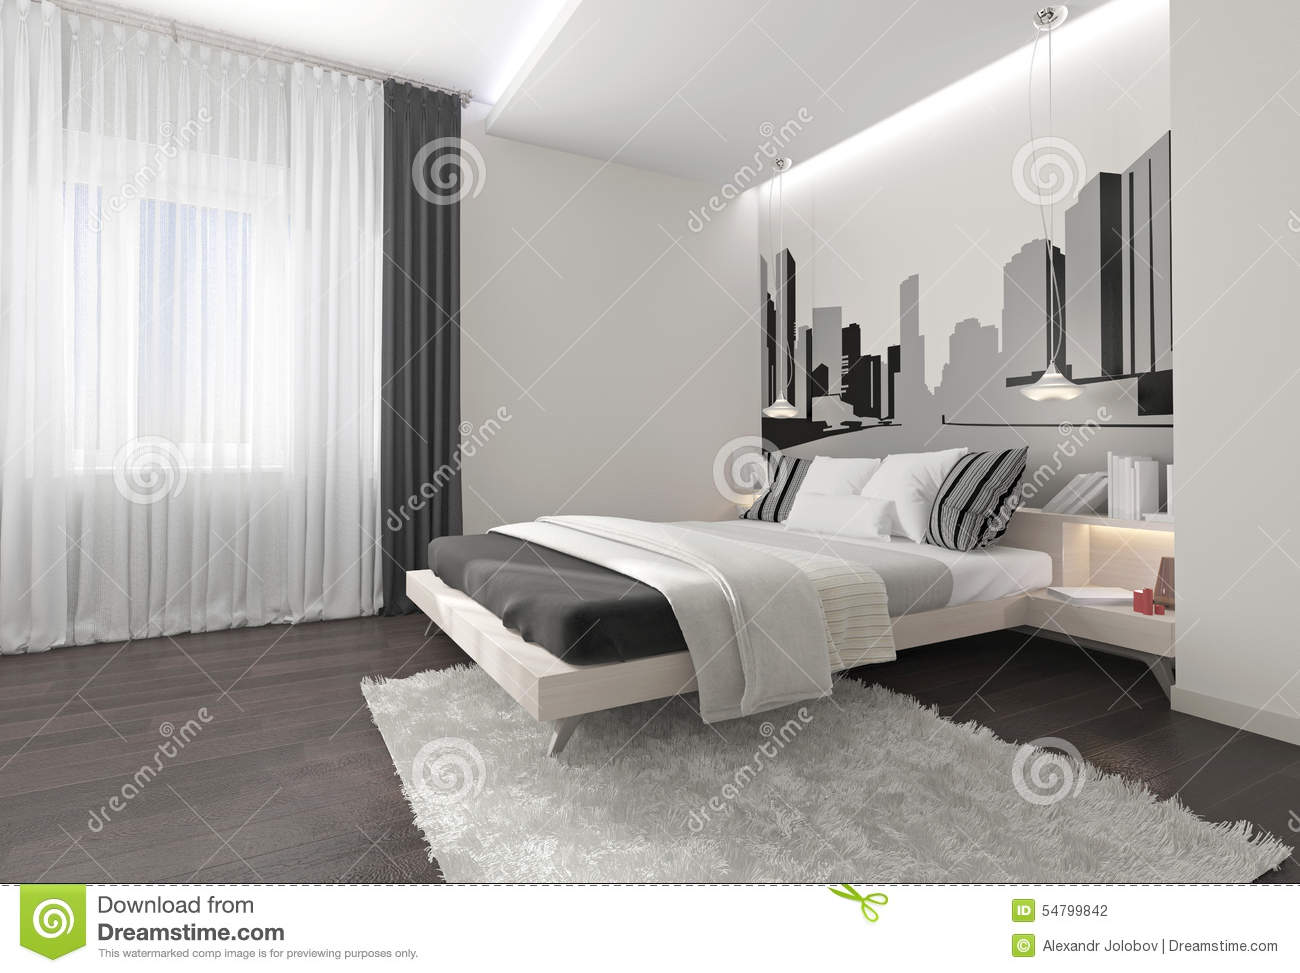 Moderne Gordijnen Slaapkamer Modern Bedroom Interior With Dark Curtains Stock Photo